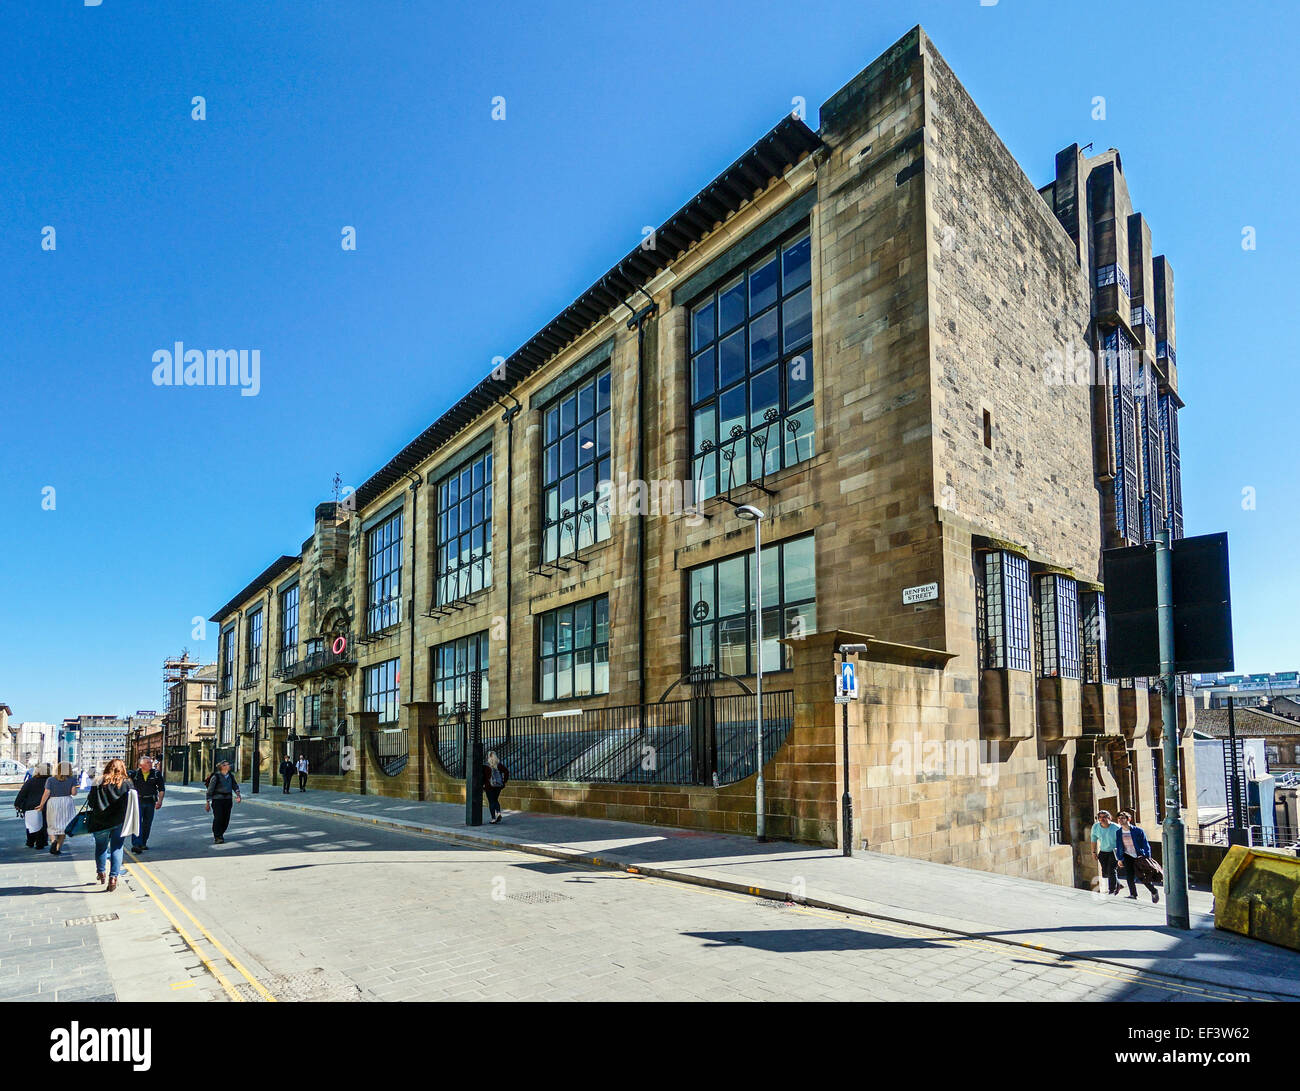 The Glasgow School of Art in Renfrew Street Glasgow Scotland designed by Charles Rennie Mackintosh seen from west - Stock Image